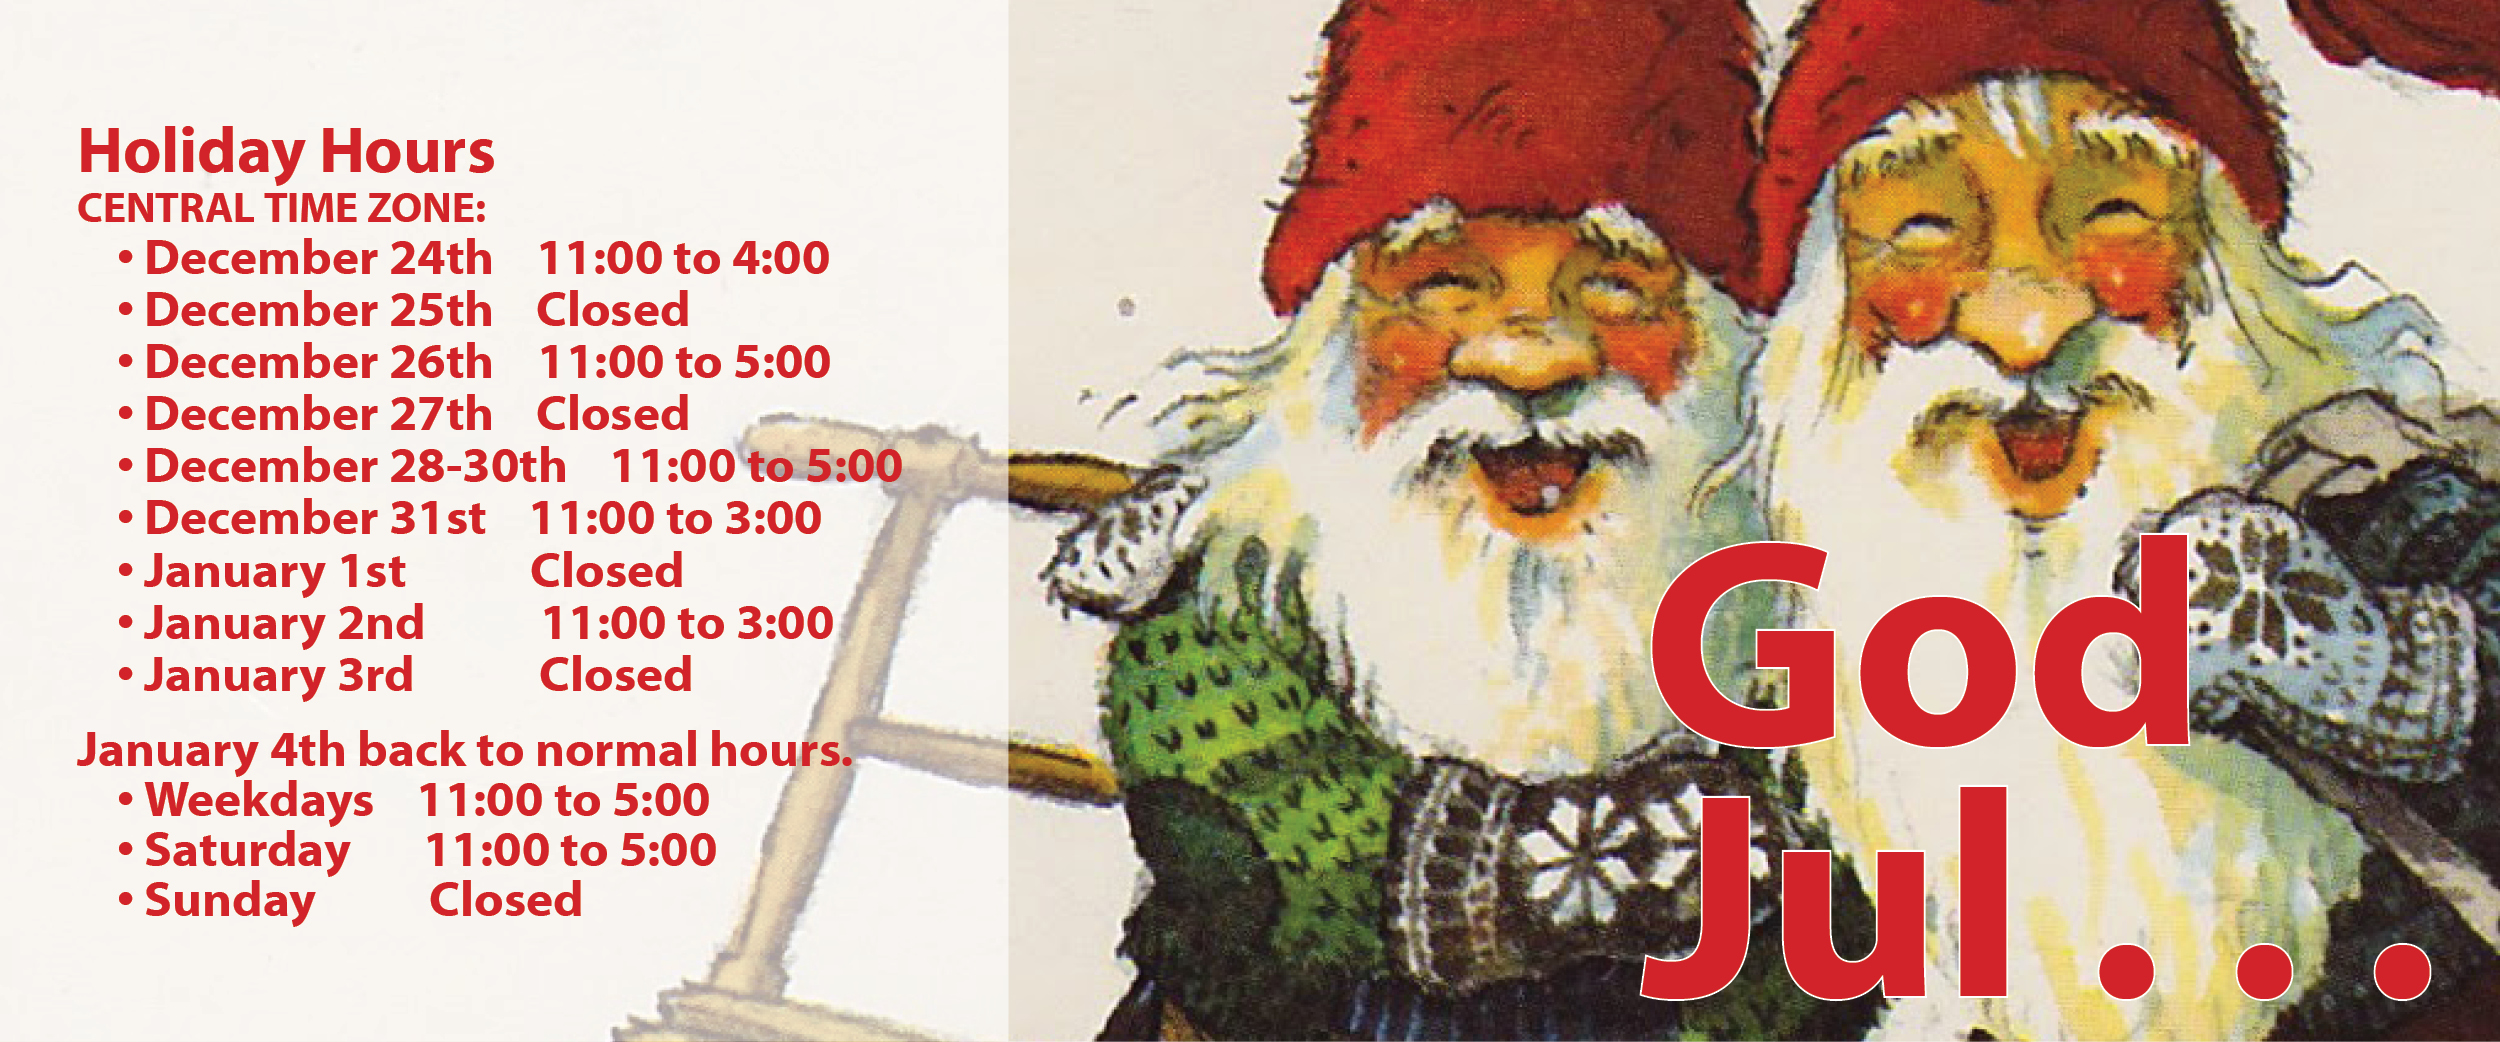 Holiday Hours Sign, The Nordic Shop Holiday Hours